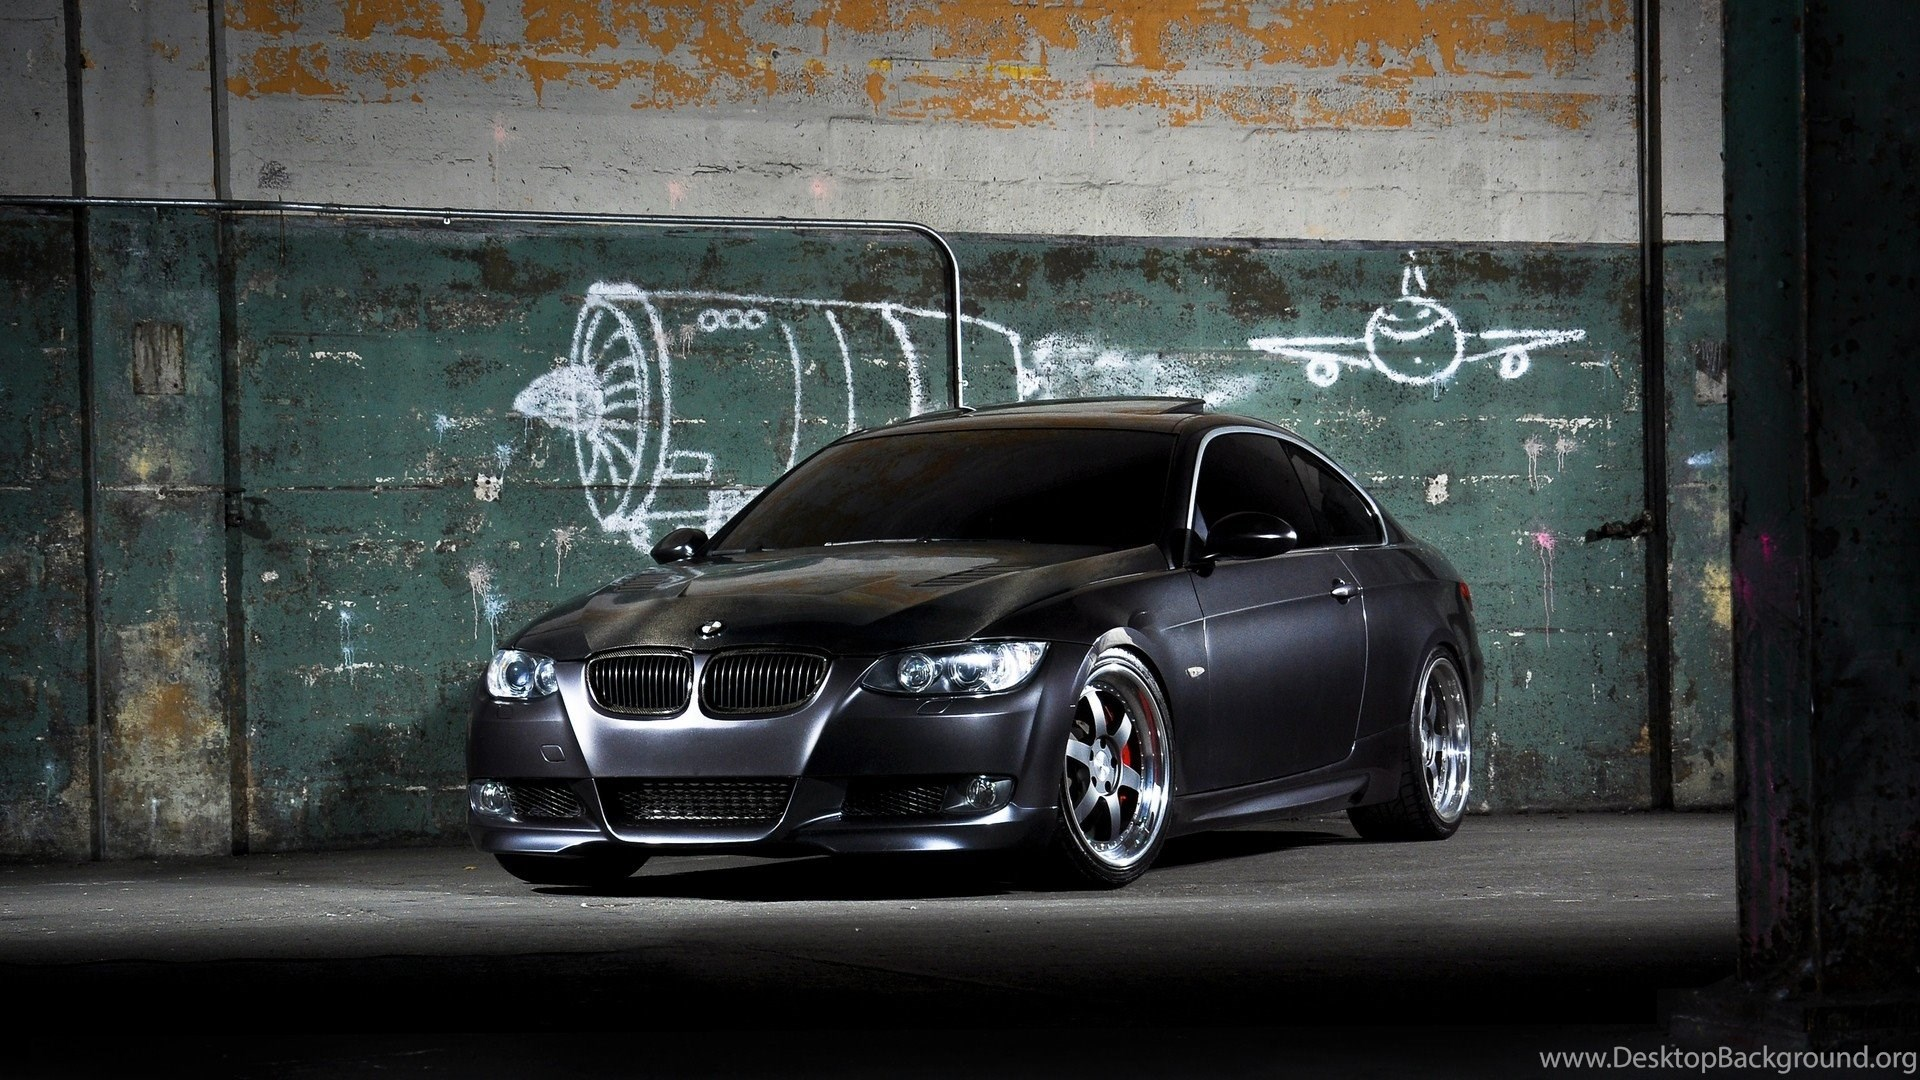 Top Wallpaper High Resolution Bmw - 950660_high-resolution-bmw-hd-1080p-wallpapers-full-size-siwallpaperhd-20251_1920x1080_h  Graphic_7683100.jpg